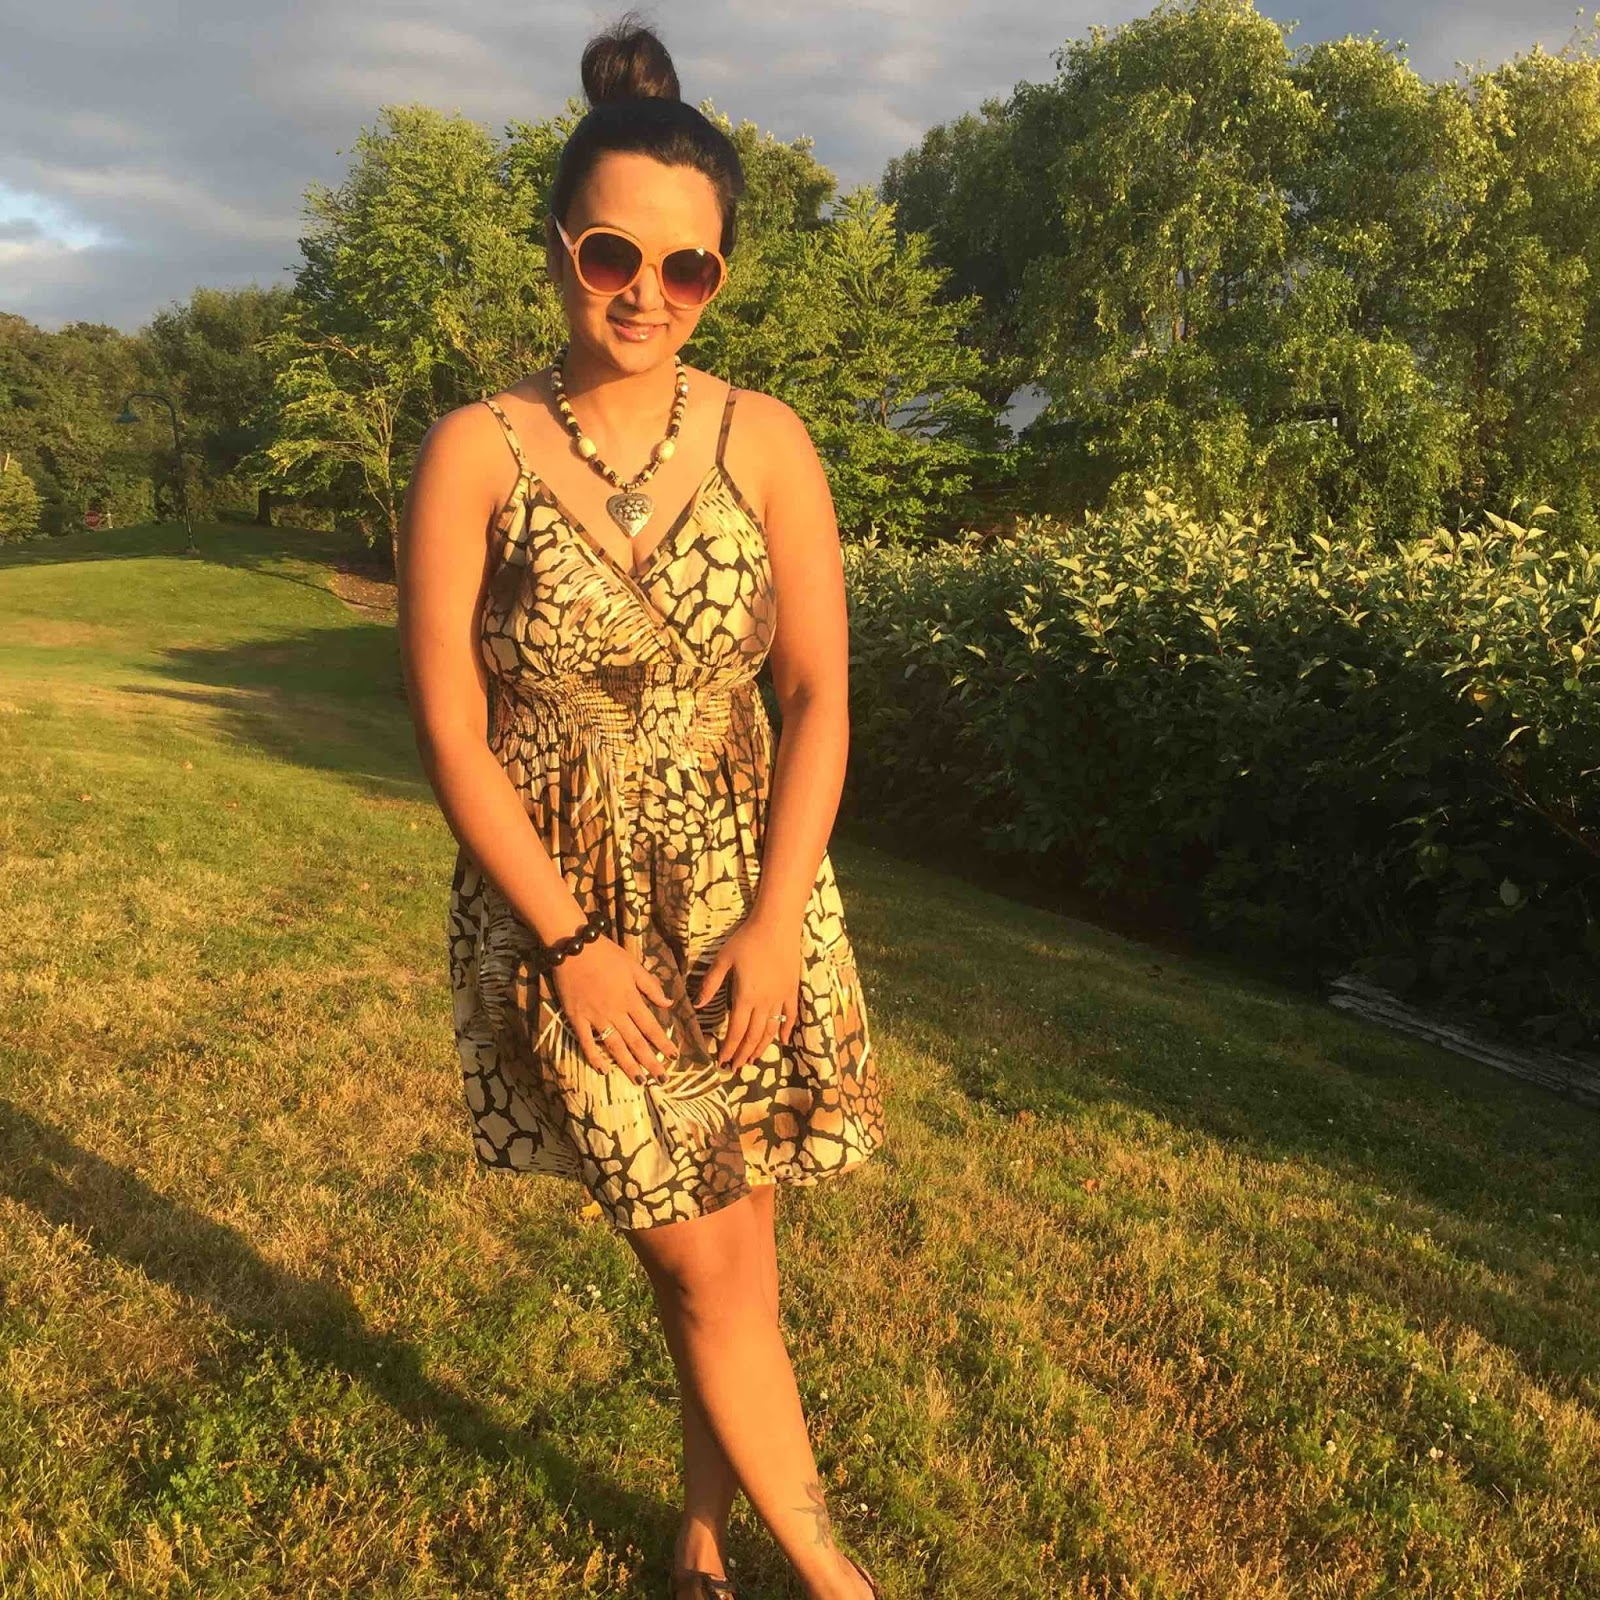 Leopard prints dress, how to wear leopard prints, Ananya in a dress, gene coulon park